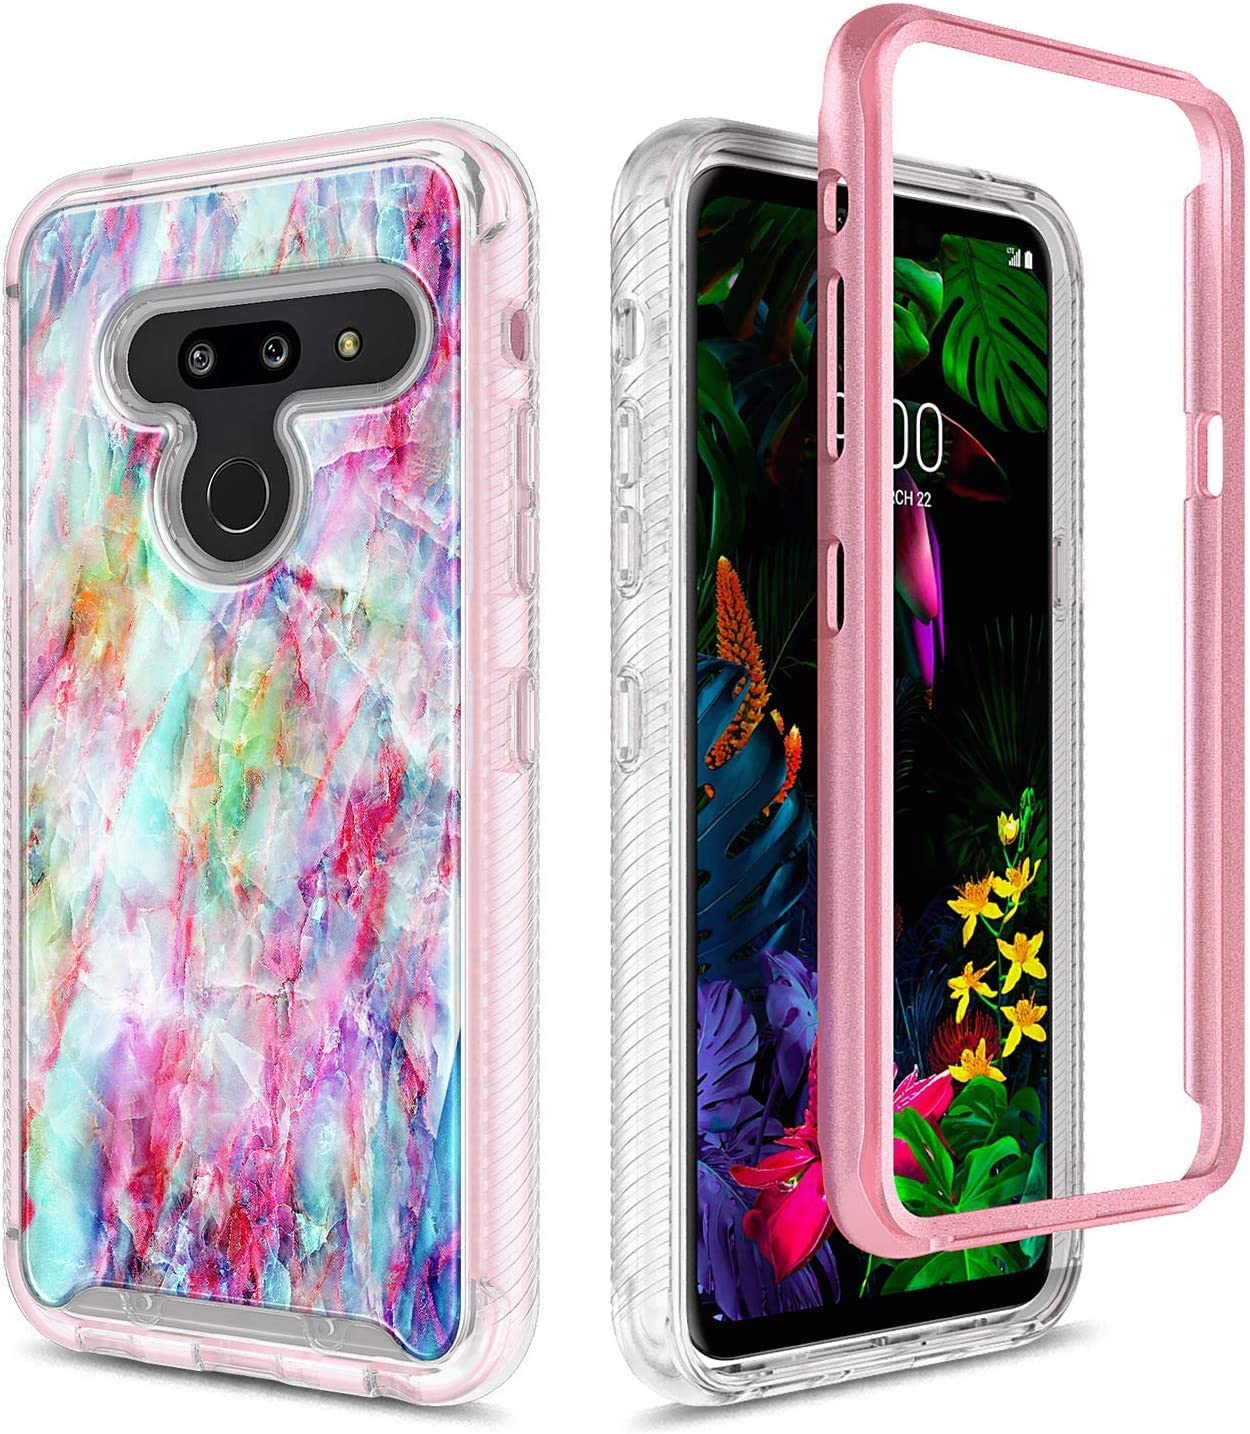 Full-Body Protective Rugged Bumper Cover with Built-in Screen Protector Ultra Thin Shockproof Impact Resist Durable Phone Case -Fantasy 2019 Release E-Began Case for LG G8 ThinQ